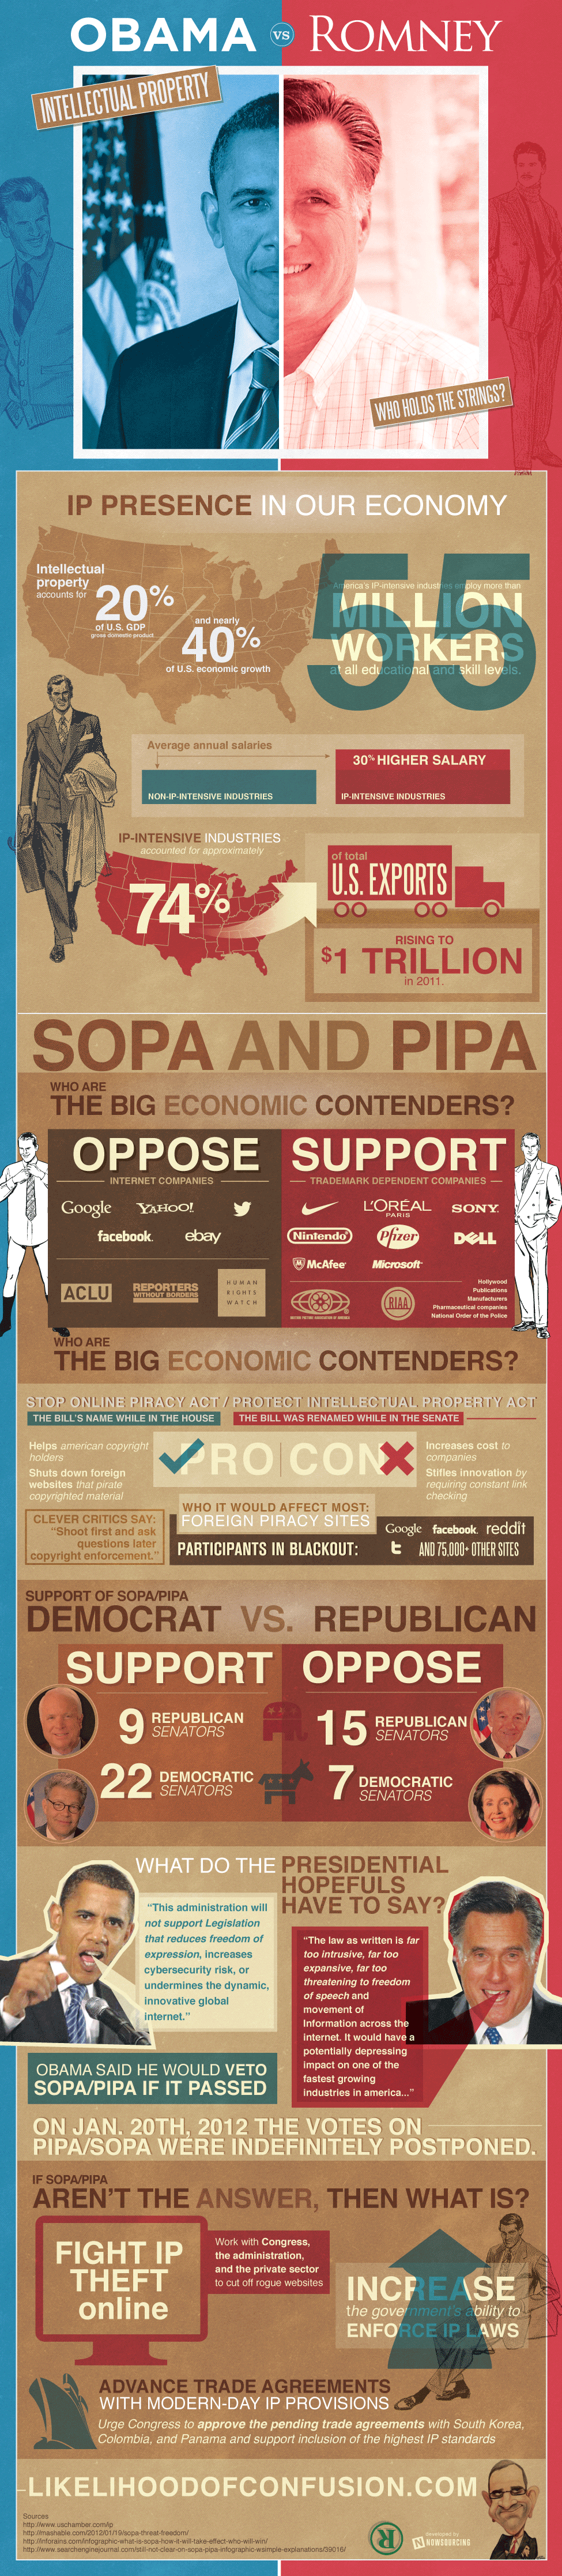 obama vs romney ip policy The IP Election (Infographic)